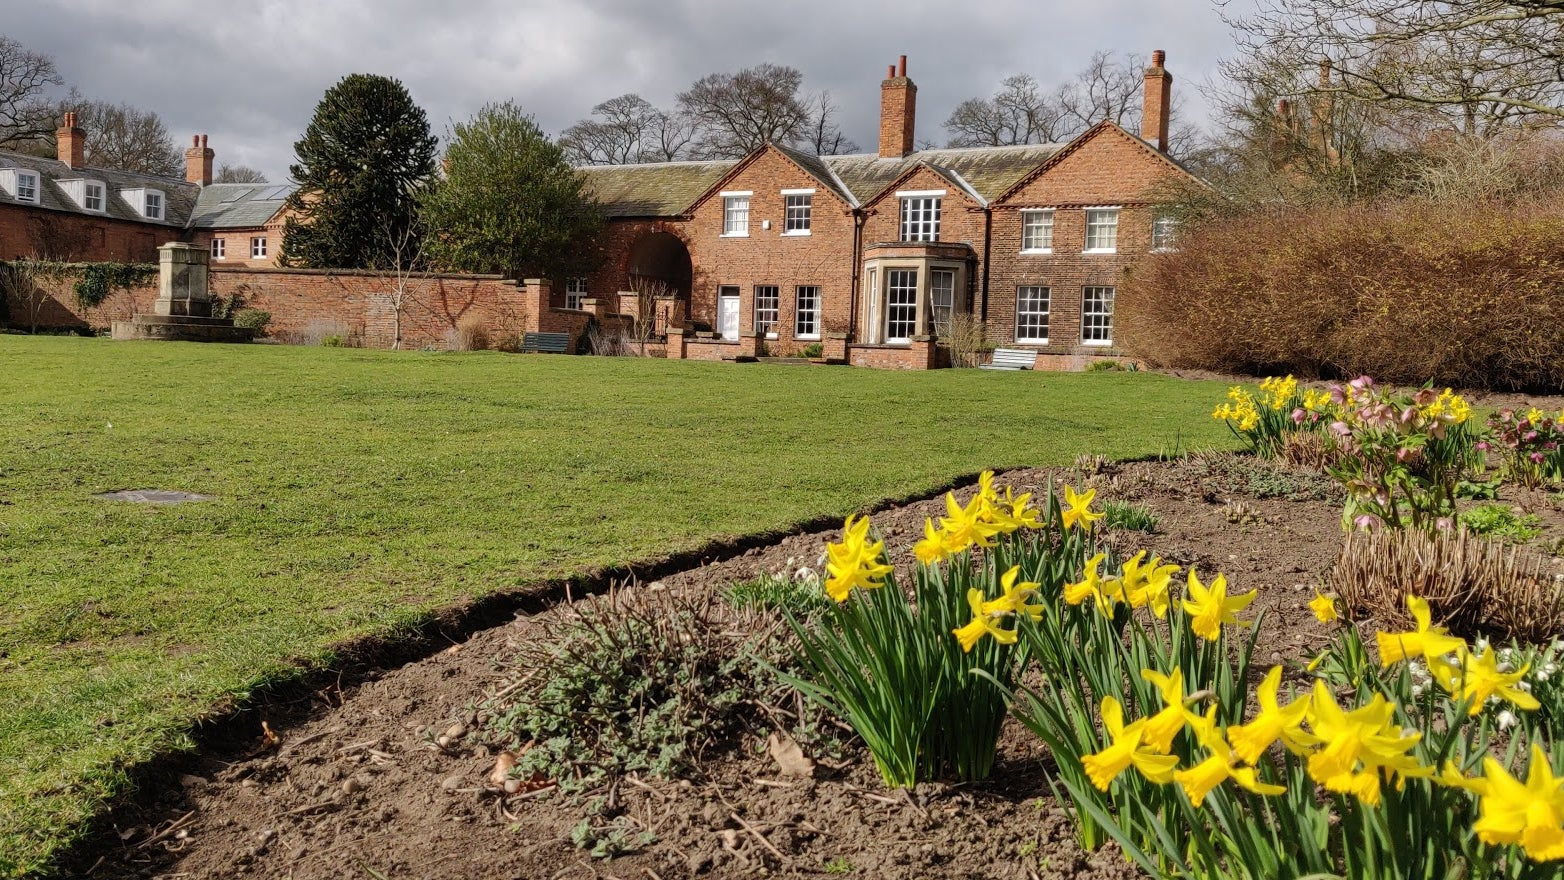 Daffodils in front of the Parsonage at Clumber Park